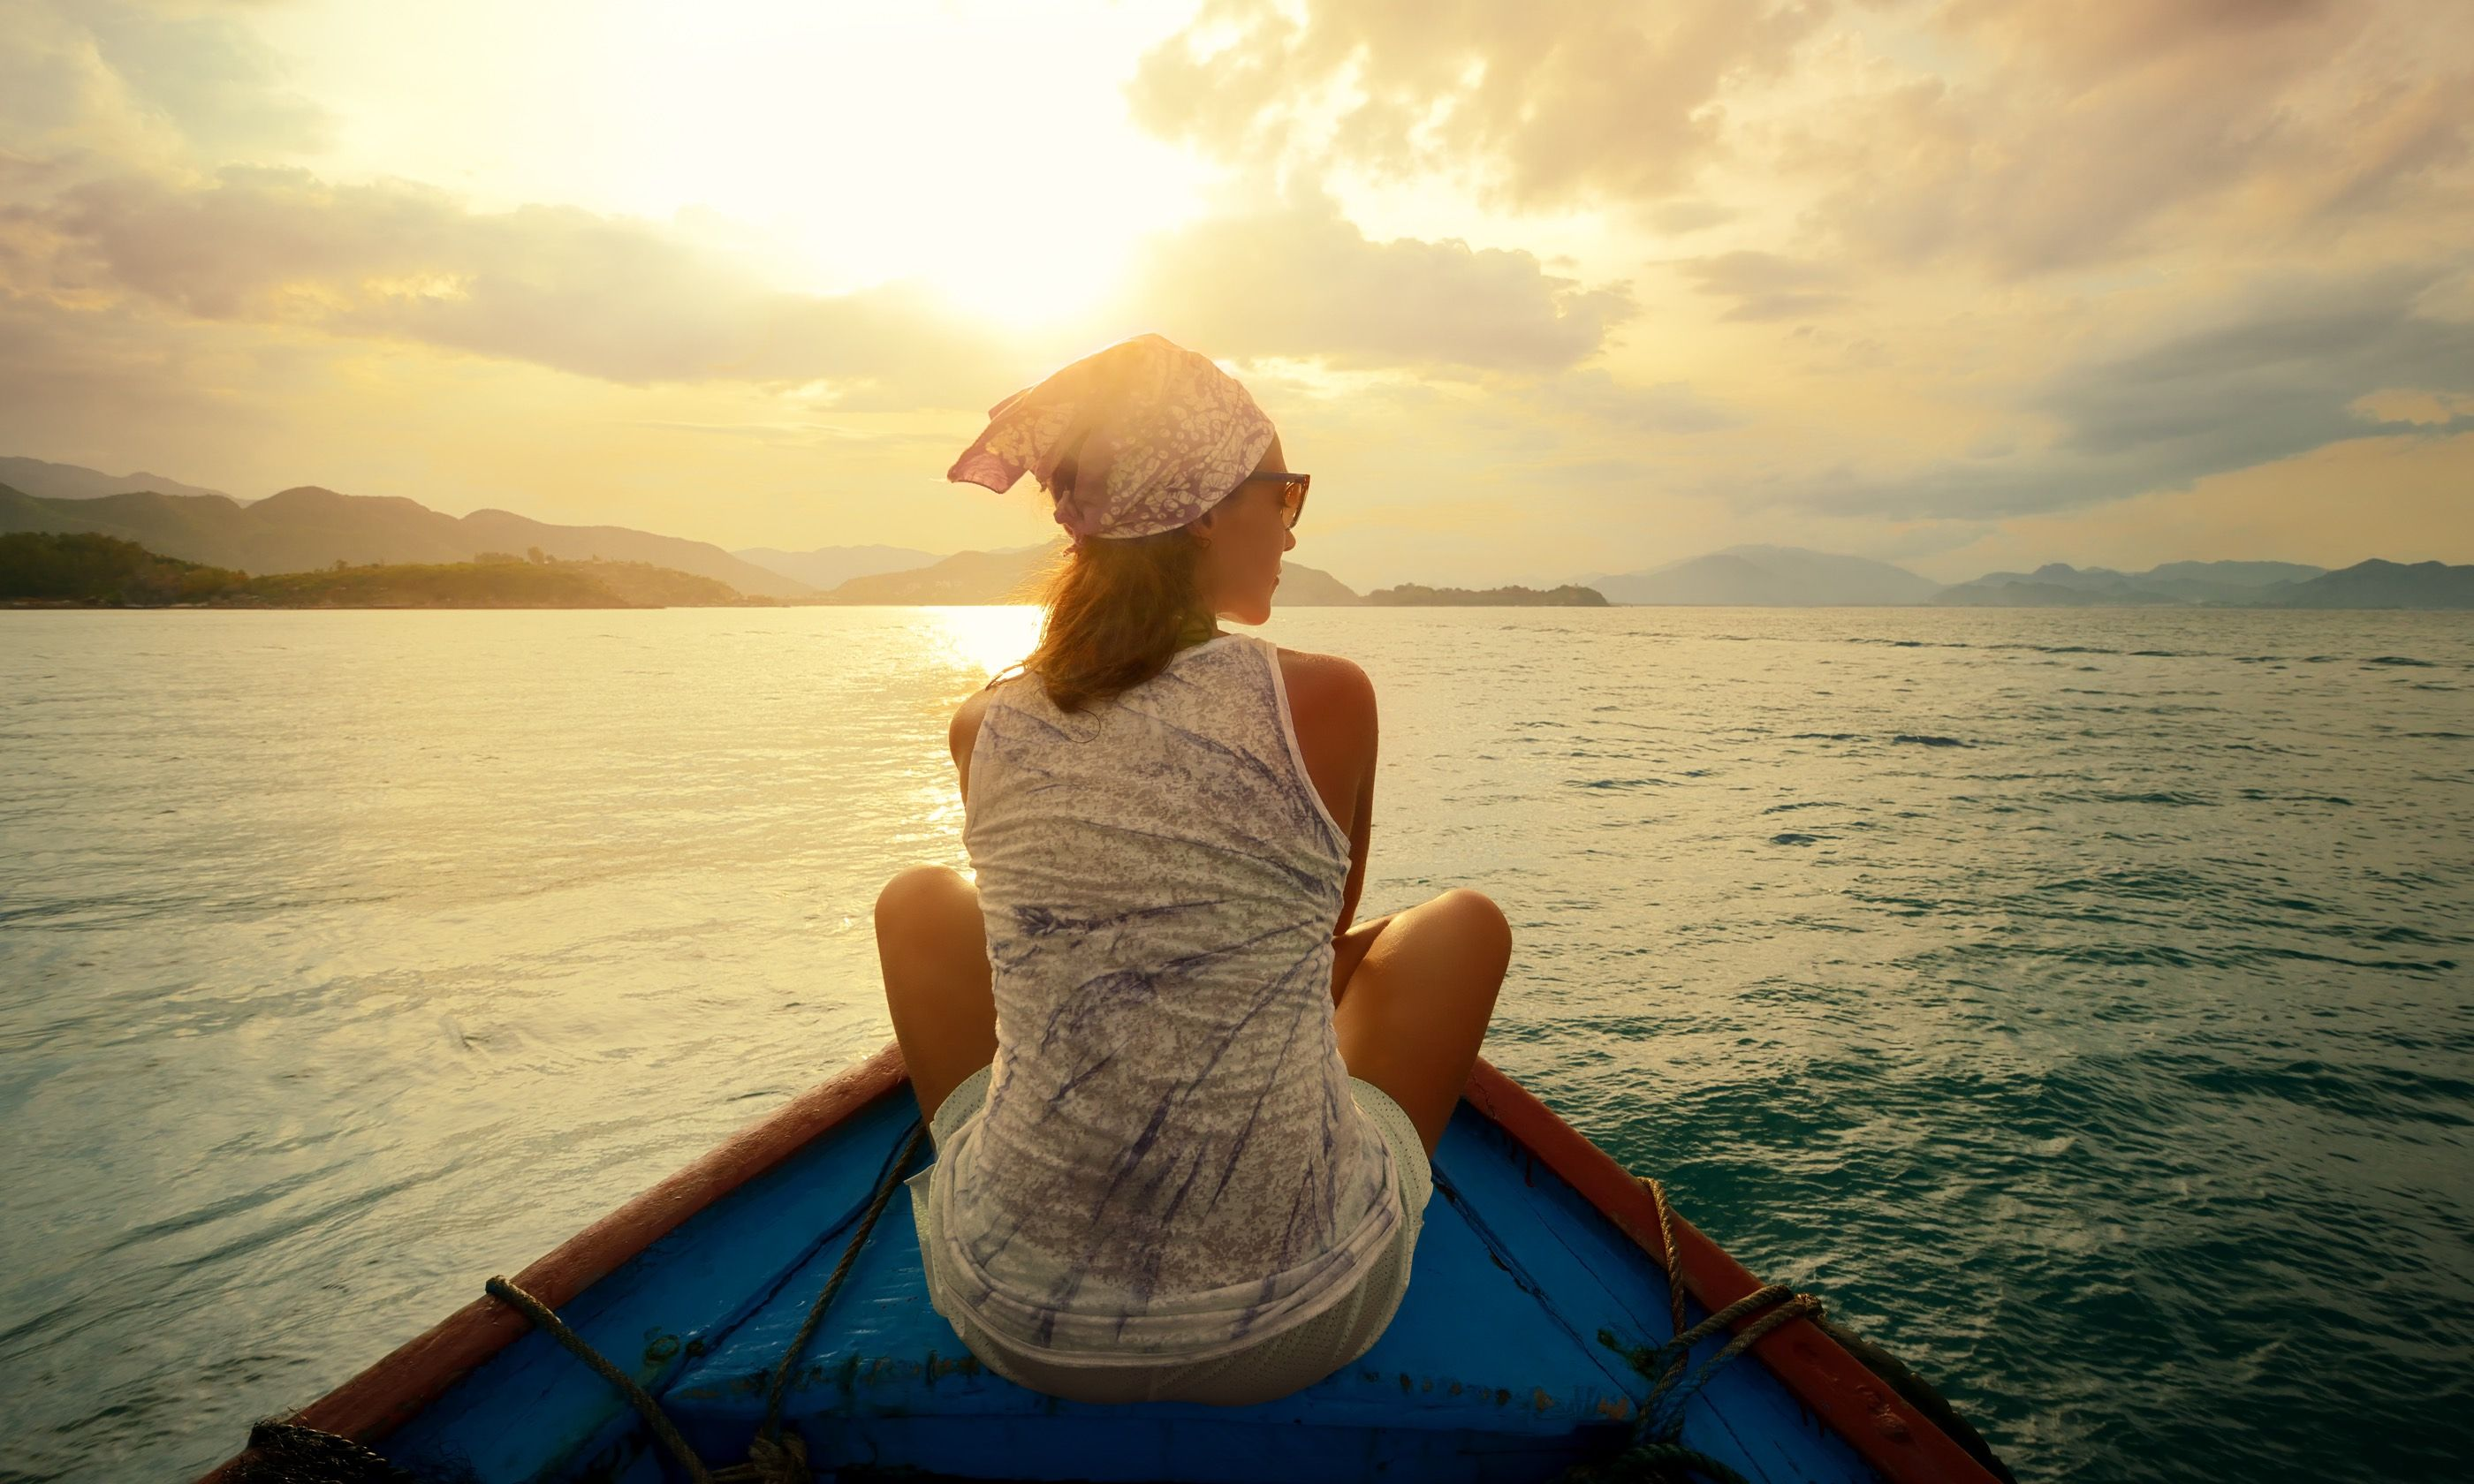 Woman contemplating sunset on a boat (Shutterstock.com)